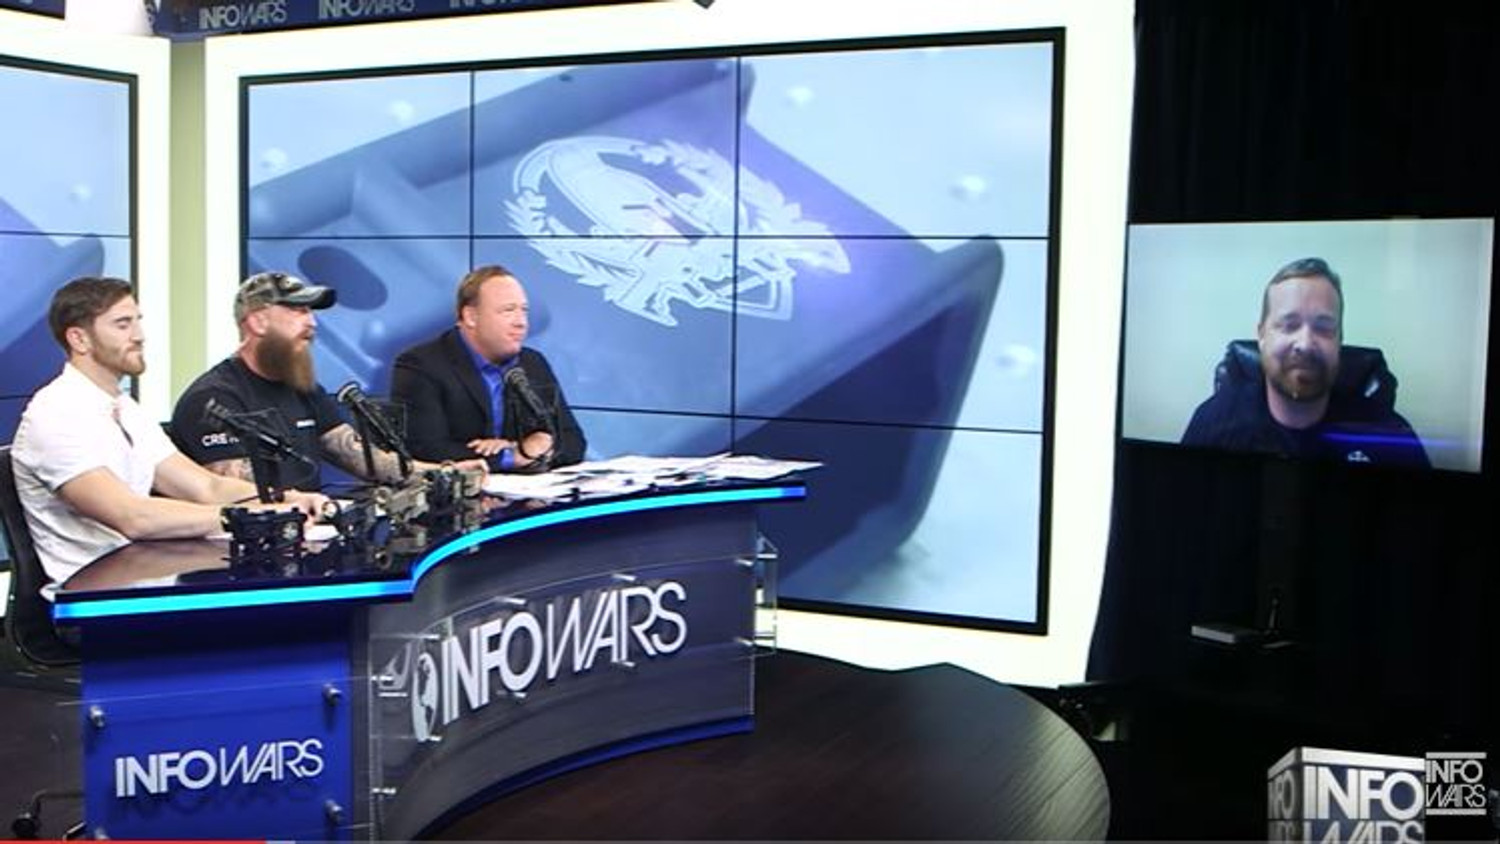 We made INFOWARS.... Thanks for the interview Alex Jones